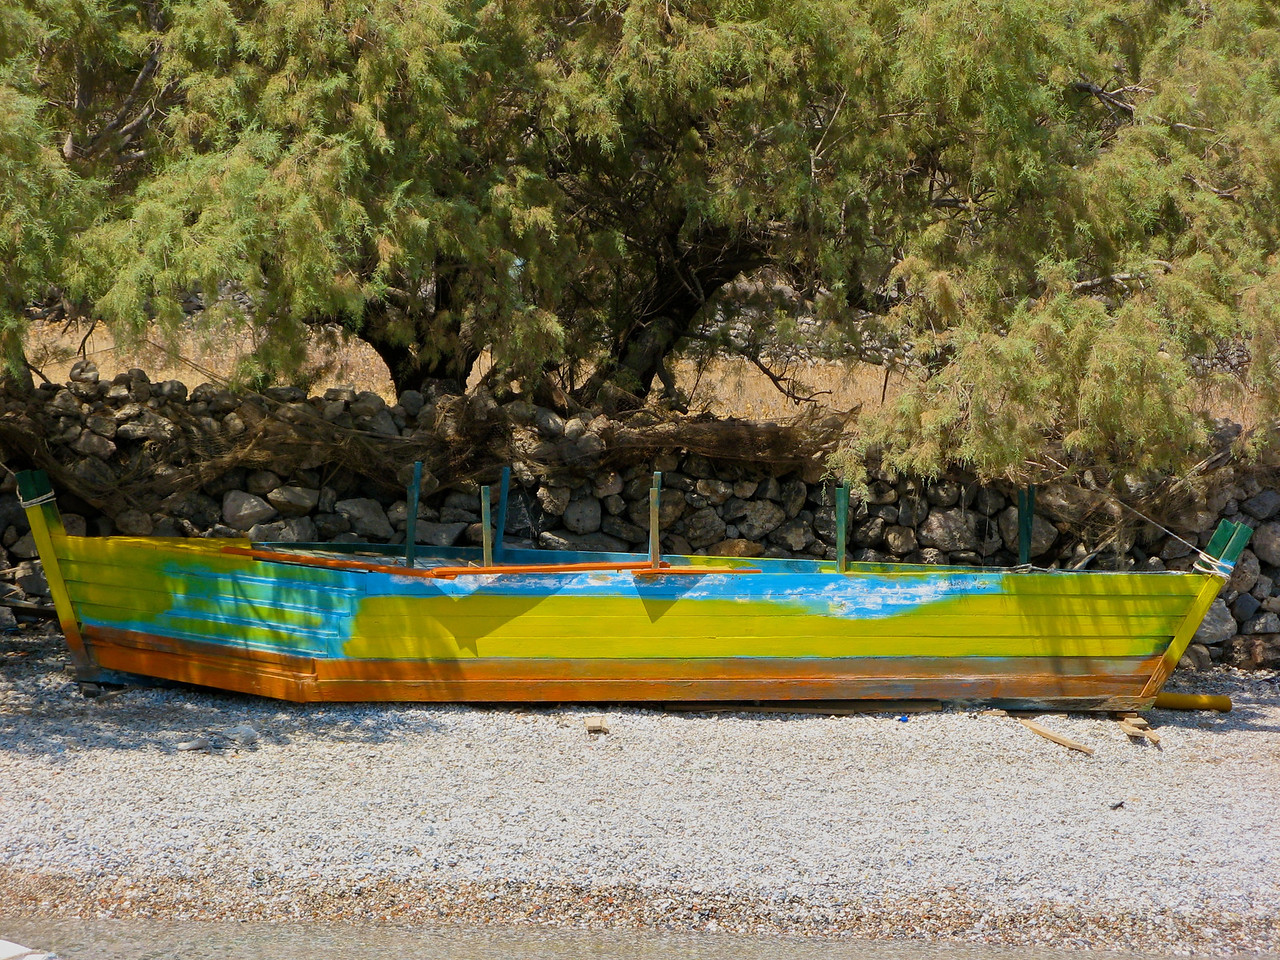 An old abandoned boat on the shore.